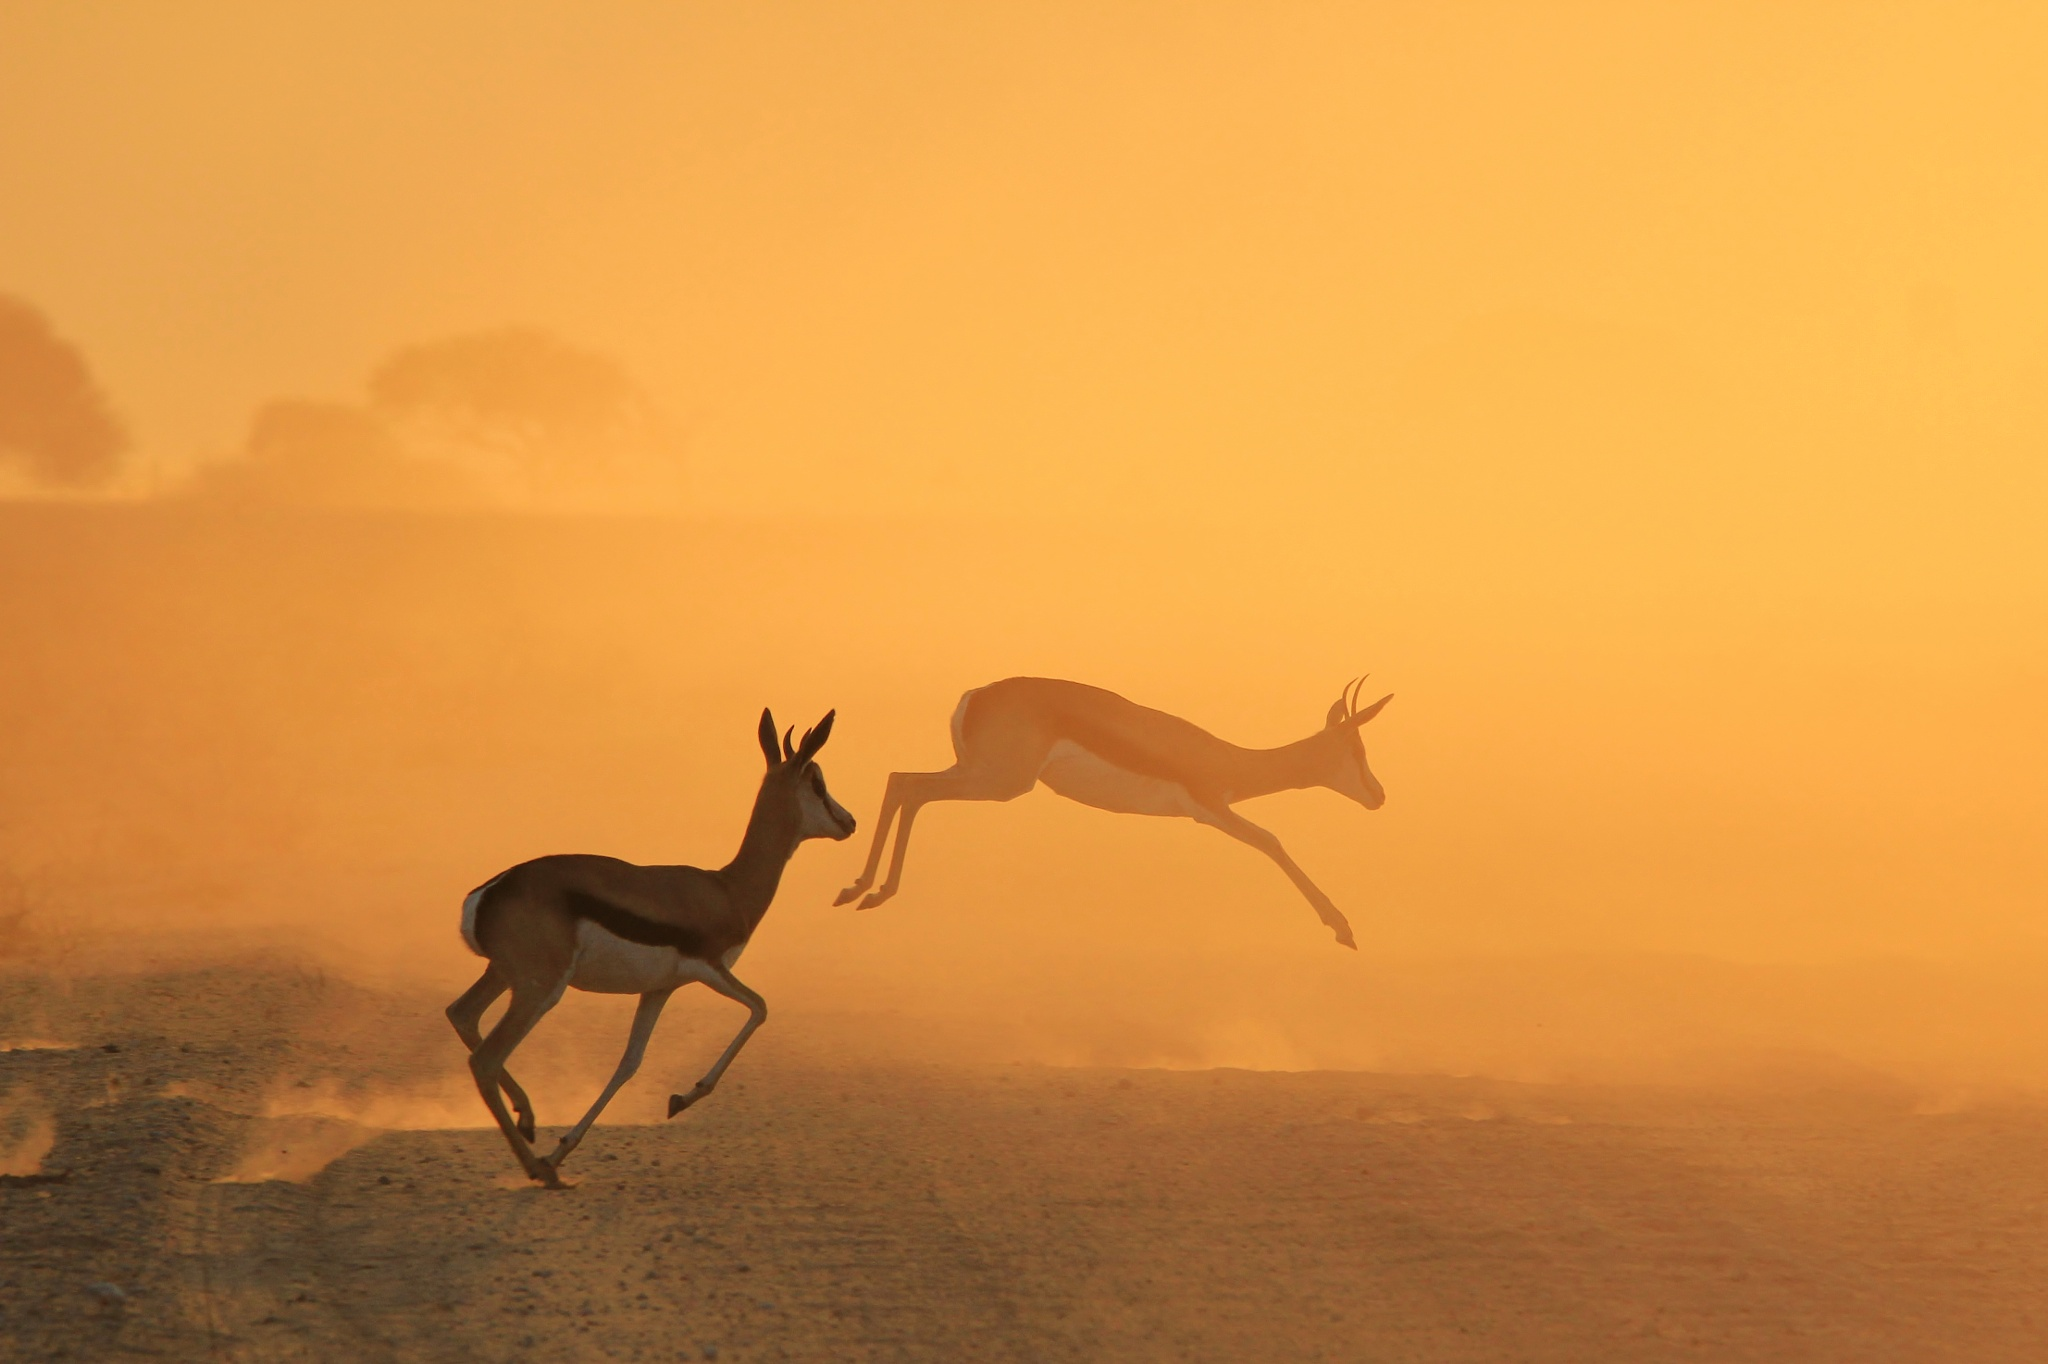 Springbok Antelope - Of Gold and Dust by Andries Alberts